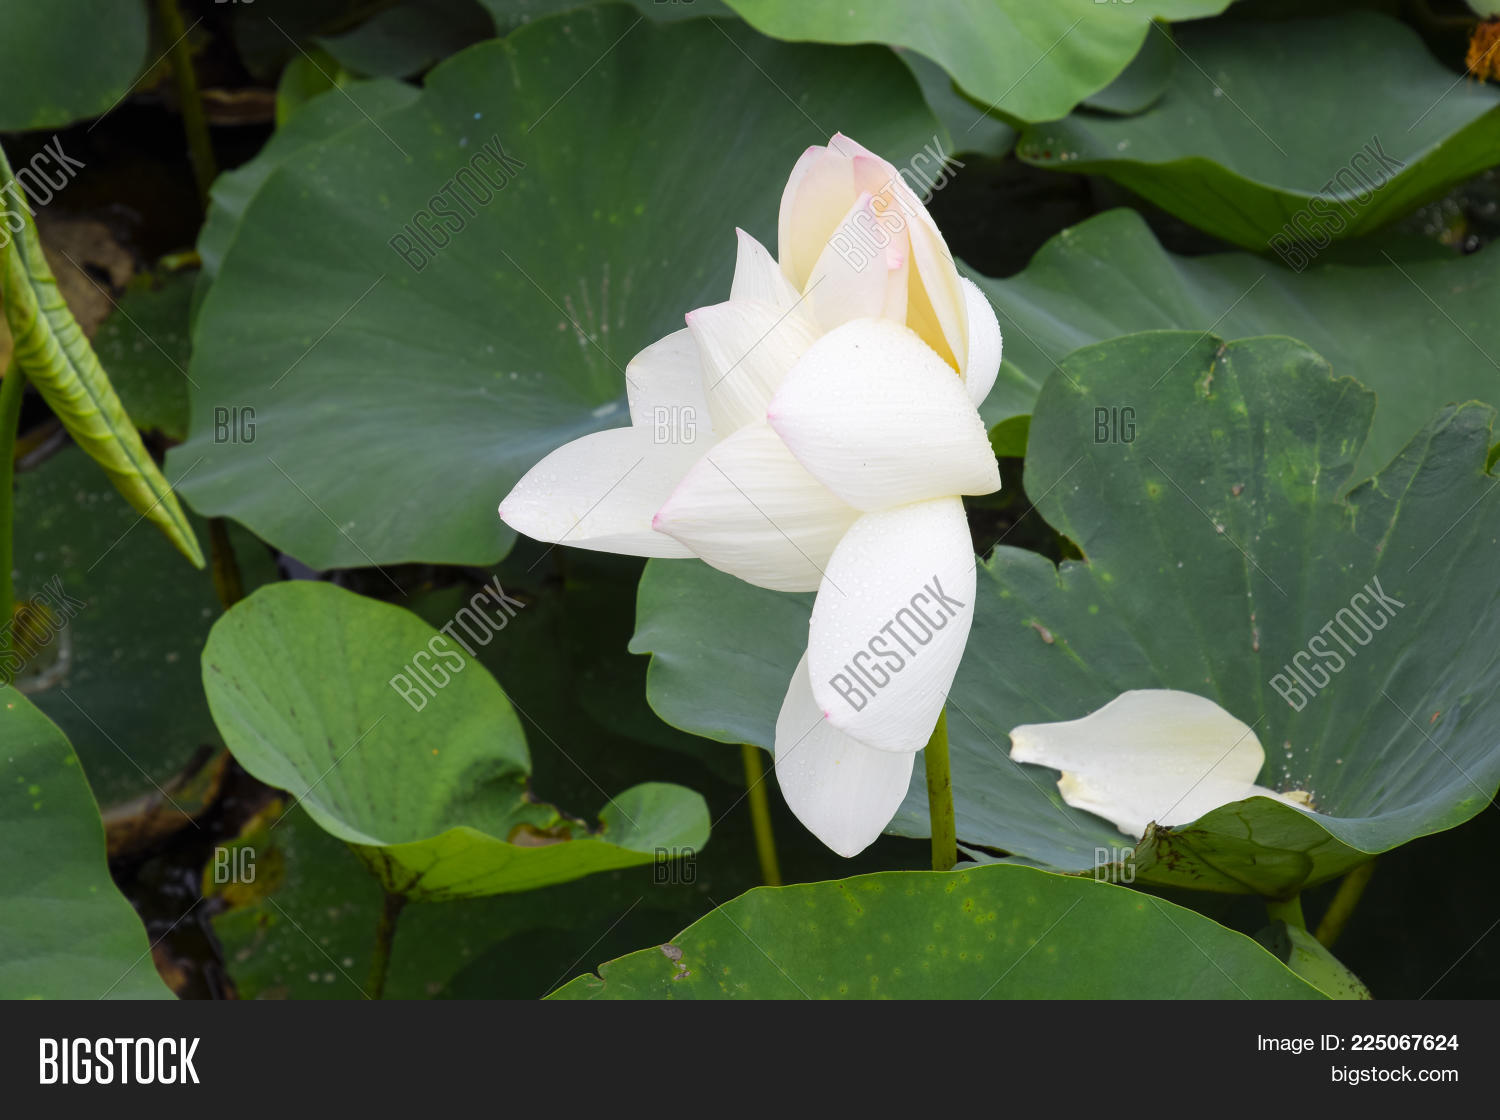 Lotus Flower Blooming Image Photo Free Trial Bigstock